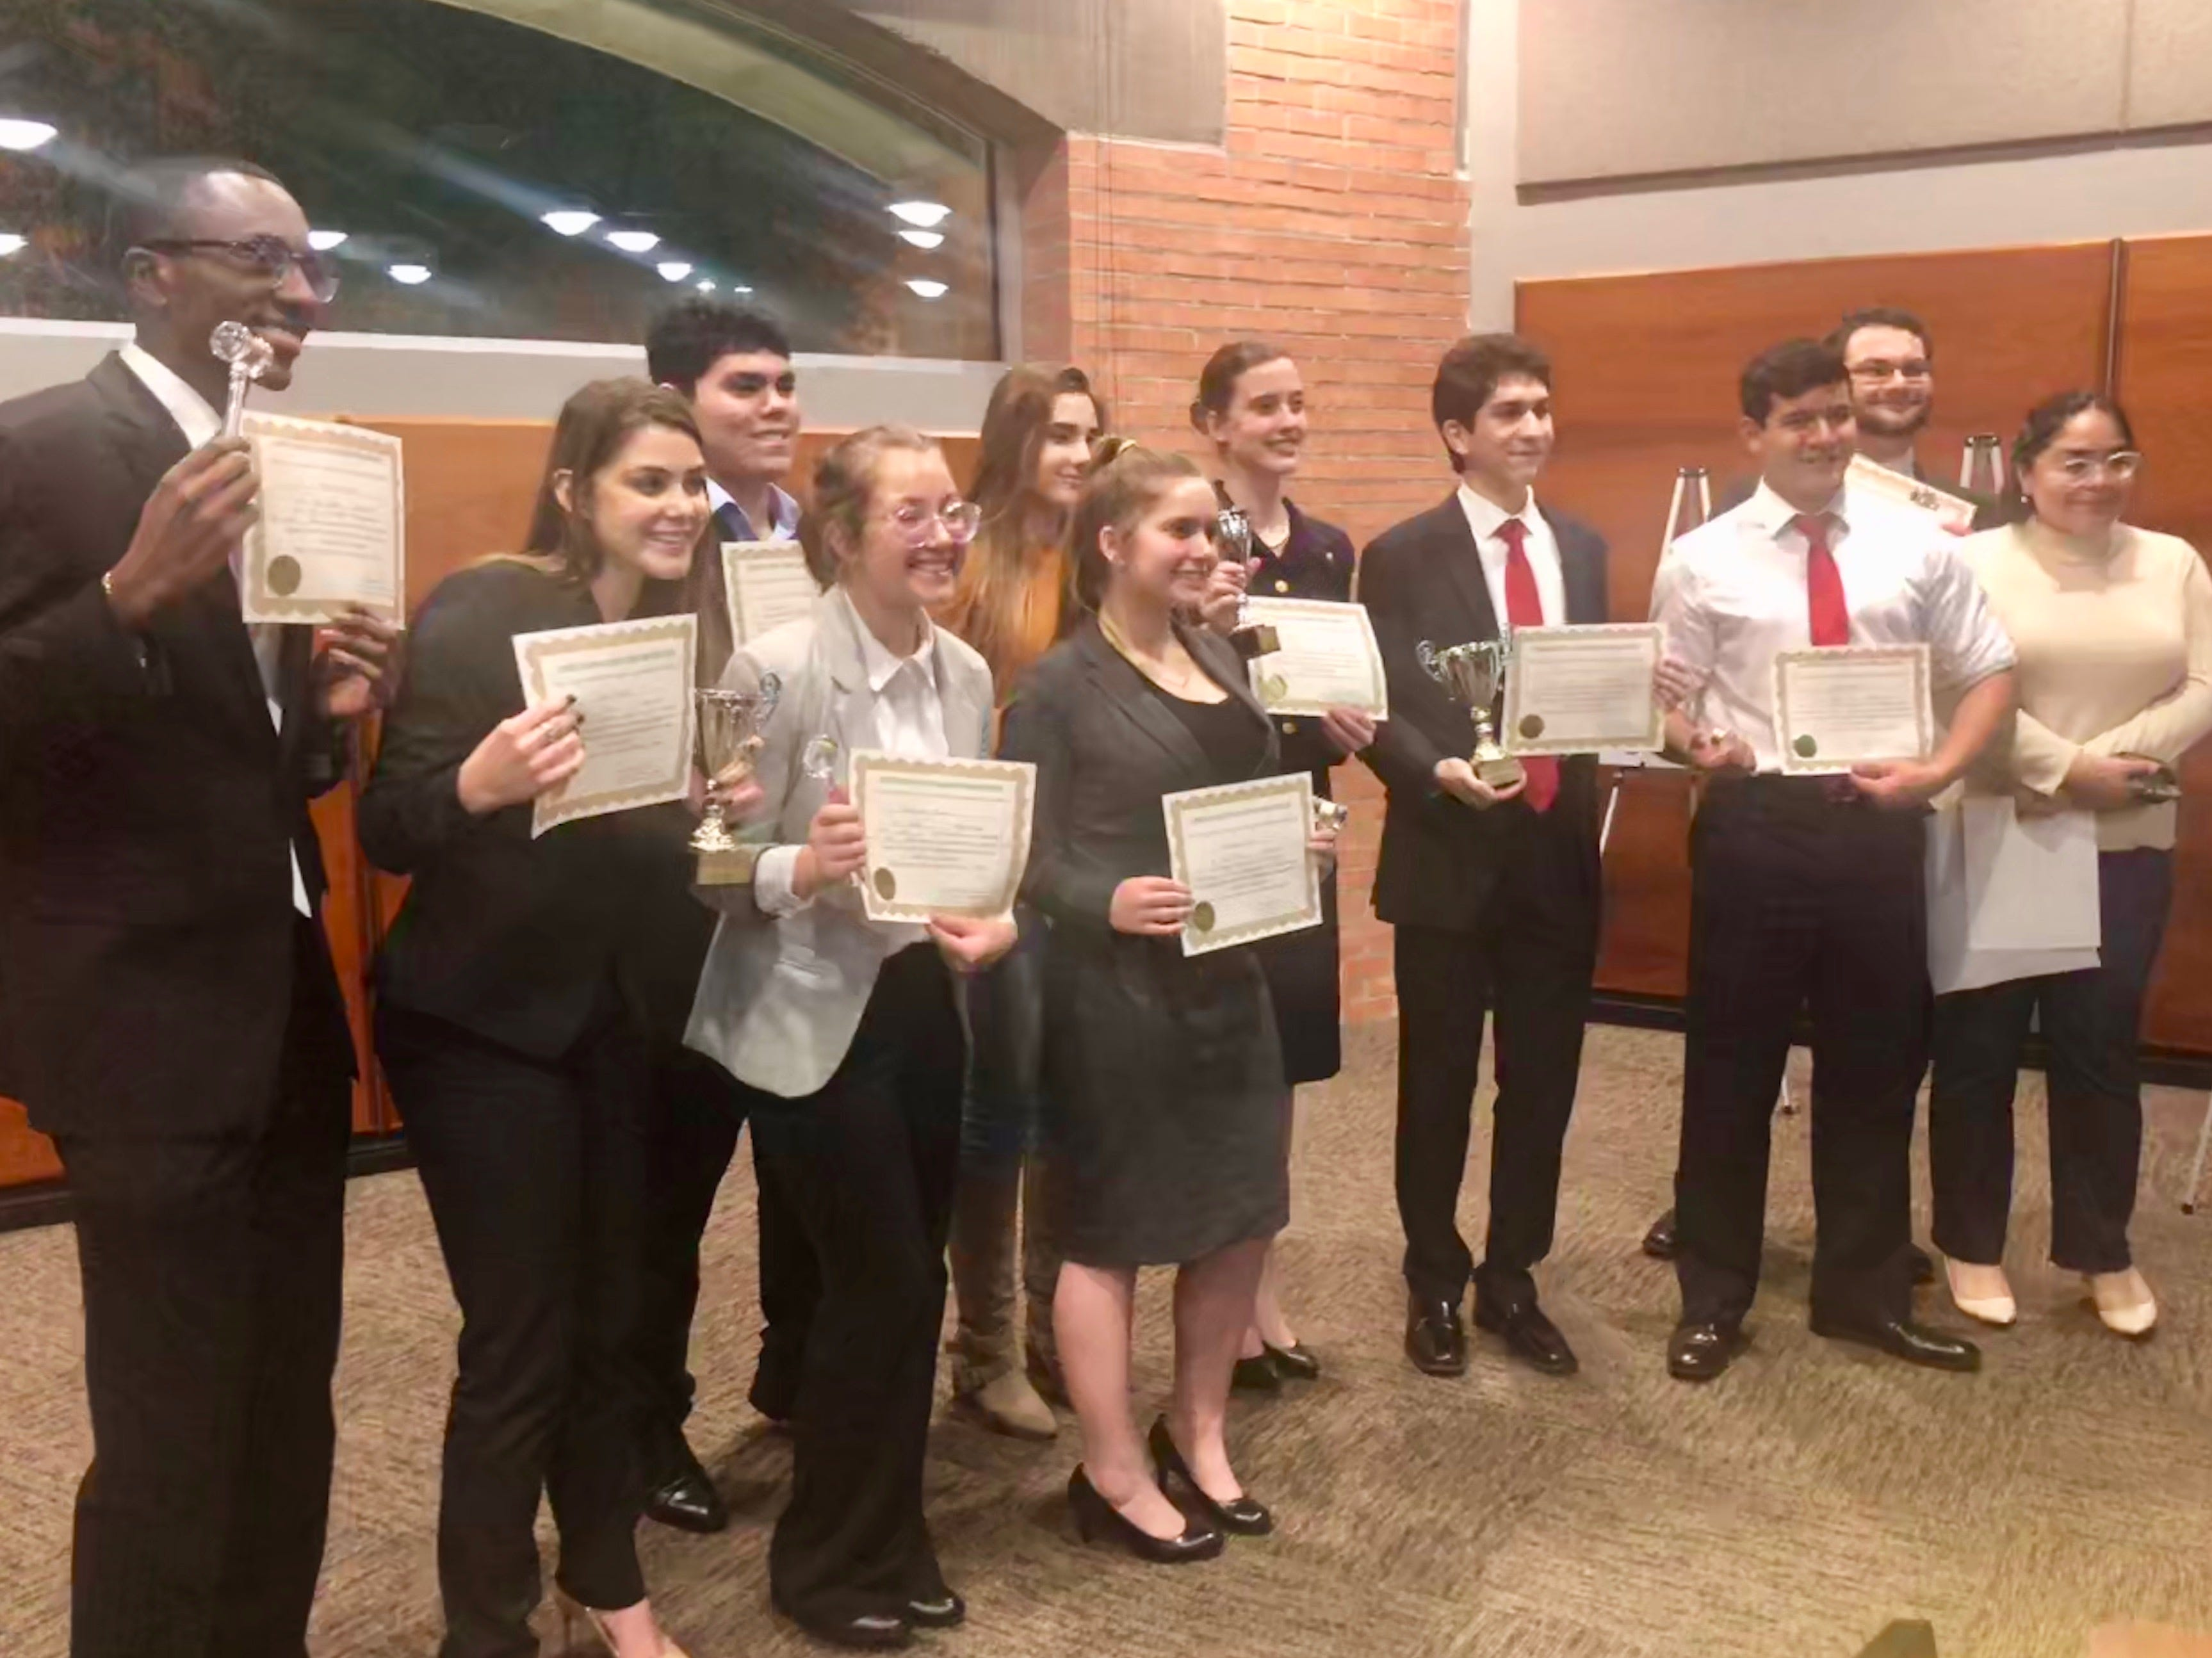 Scholarships were given to several students following the 2019 mock trial competition.